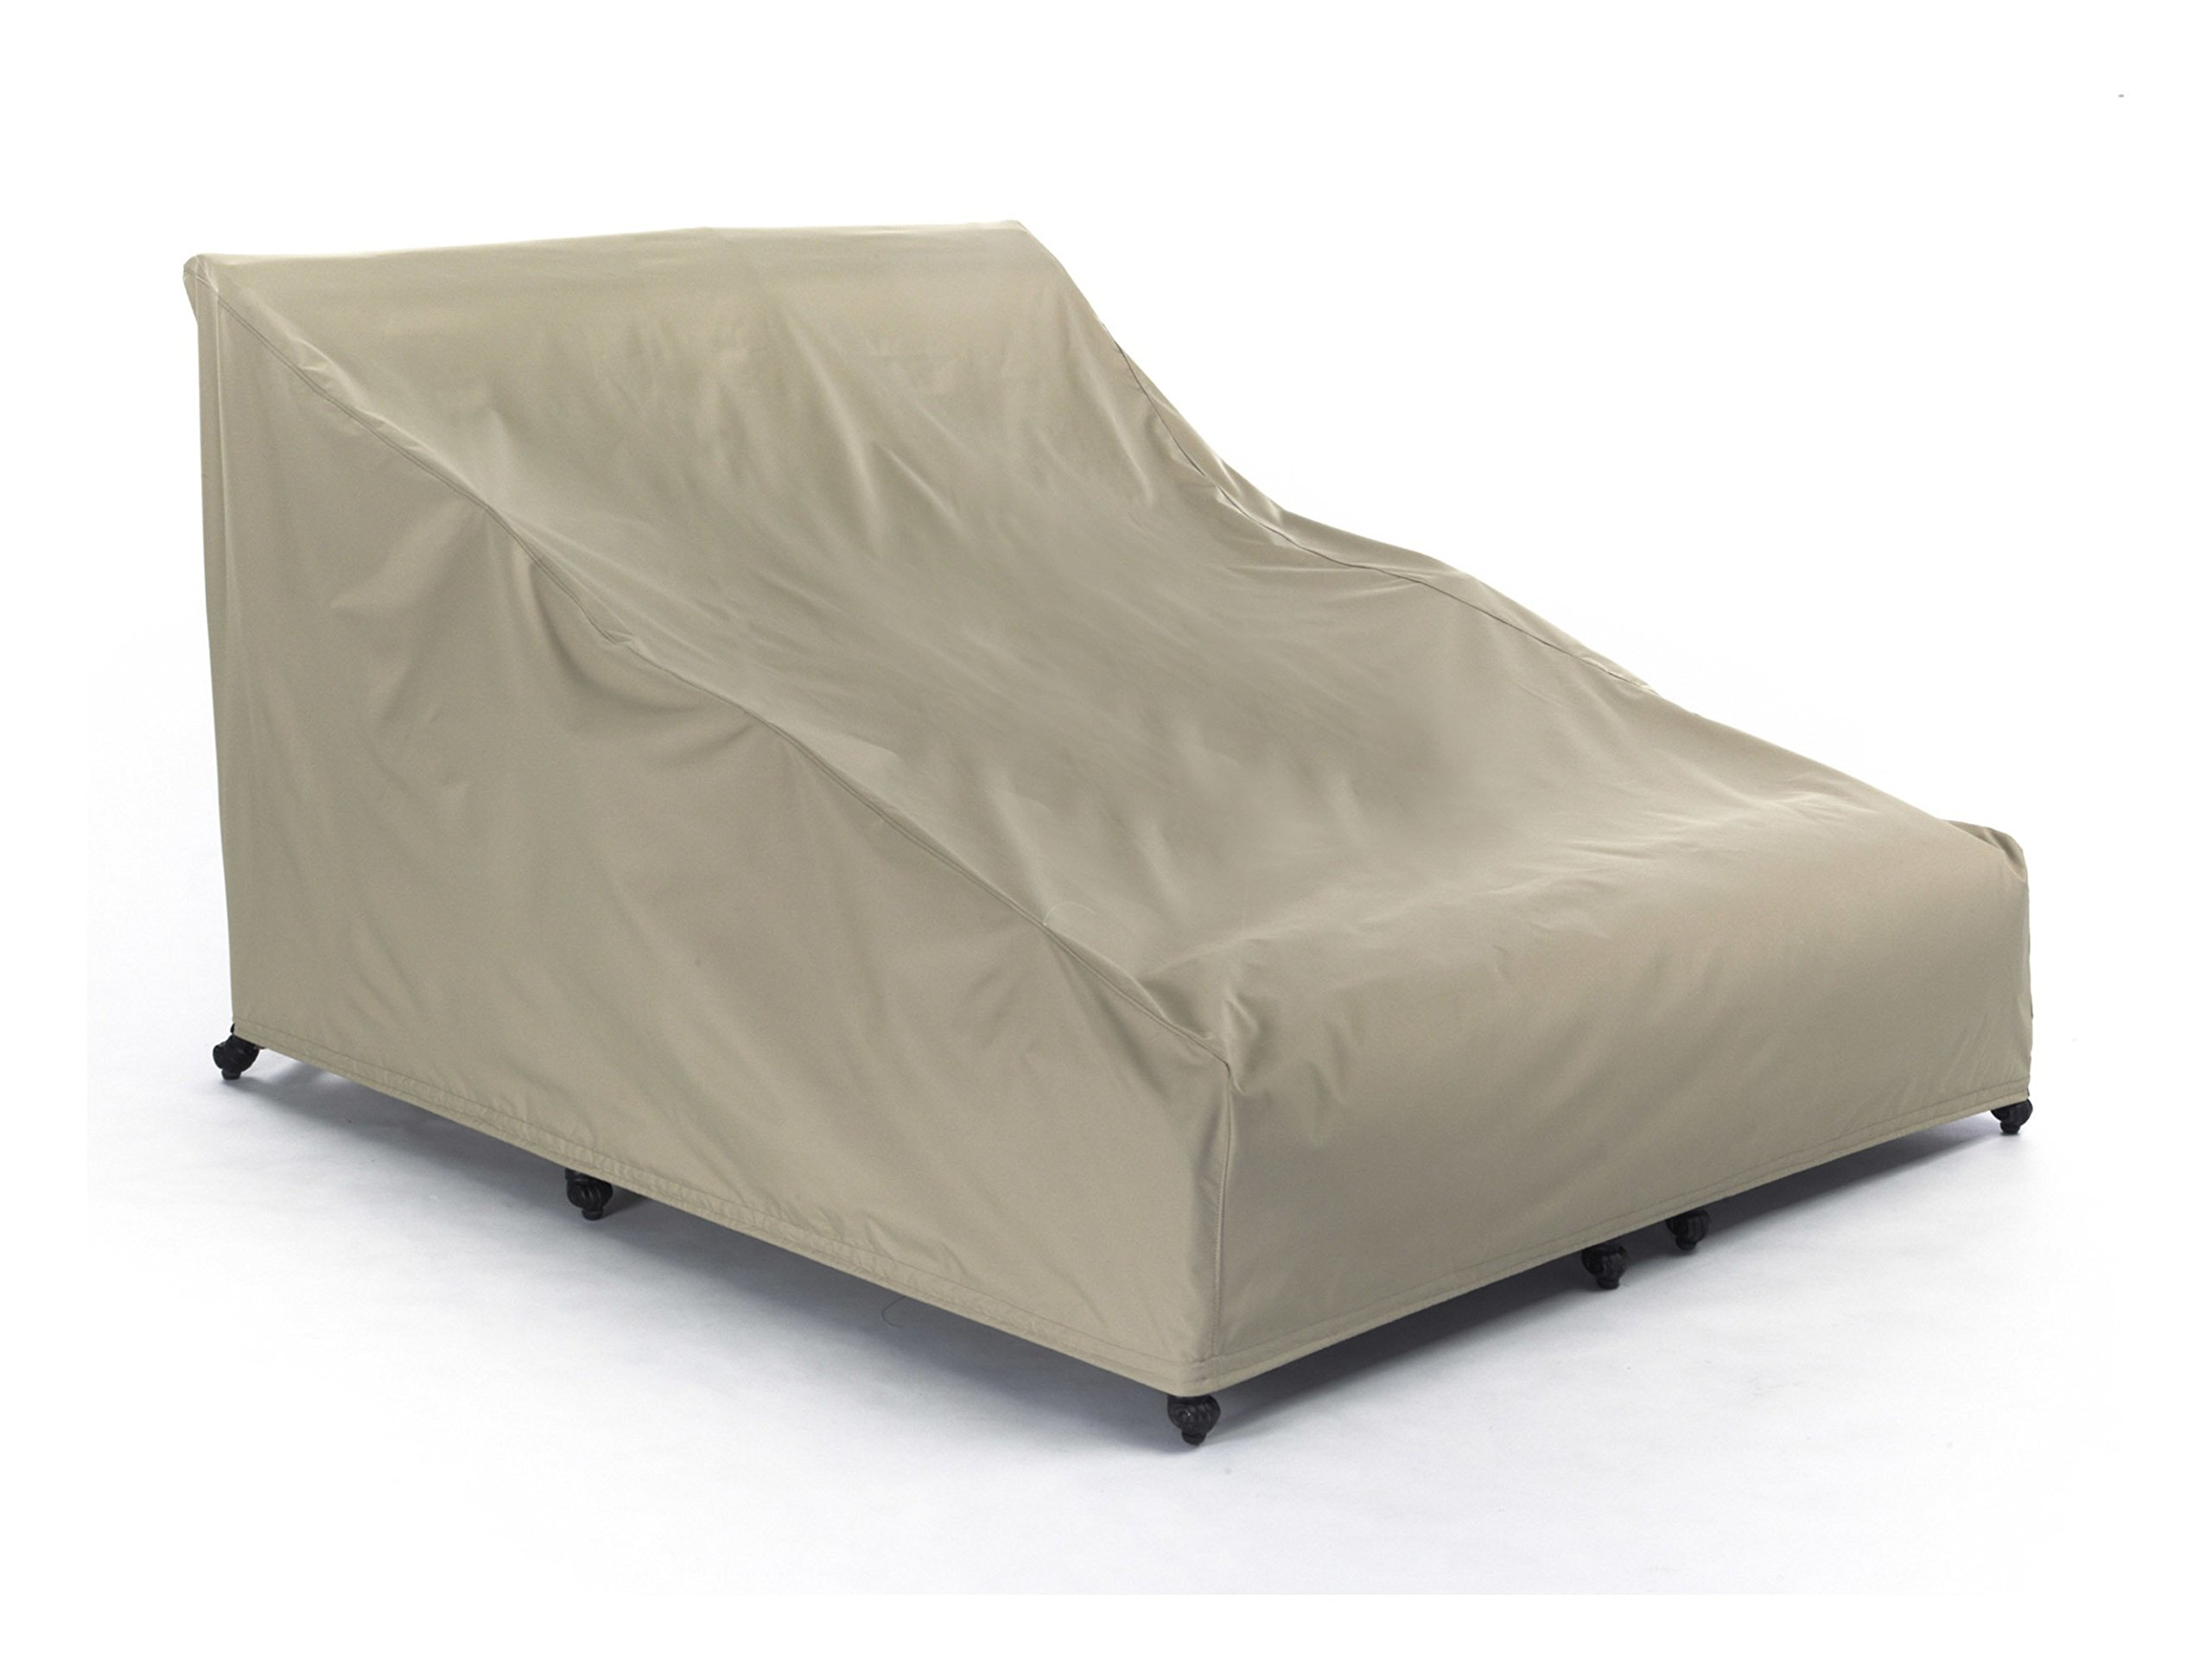 Covermates – Double Chaise Lounge Covers – 58W x 78D x 34H – Elite Collection – 3 YR Warranty – Year Around Protection - Khaki